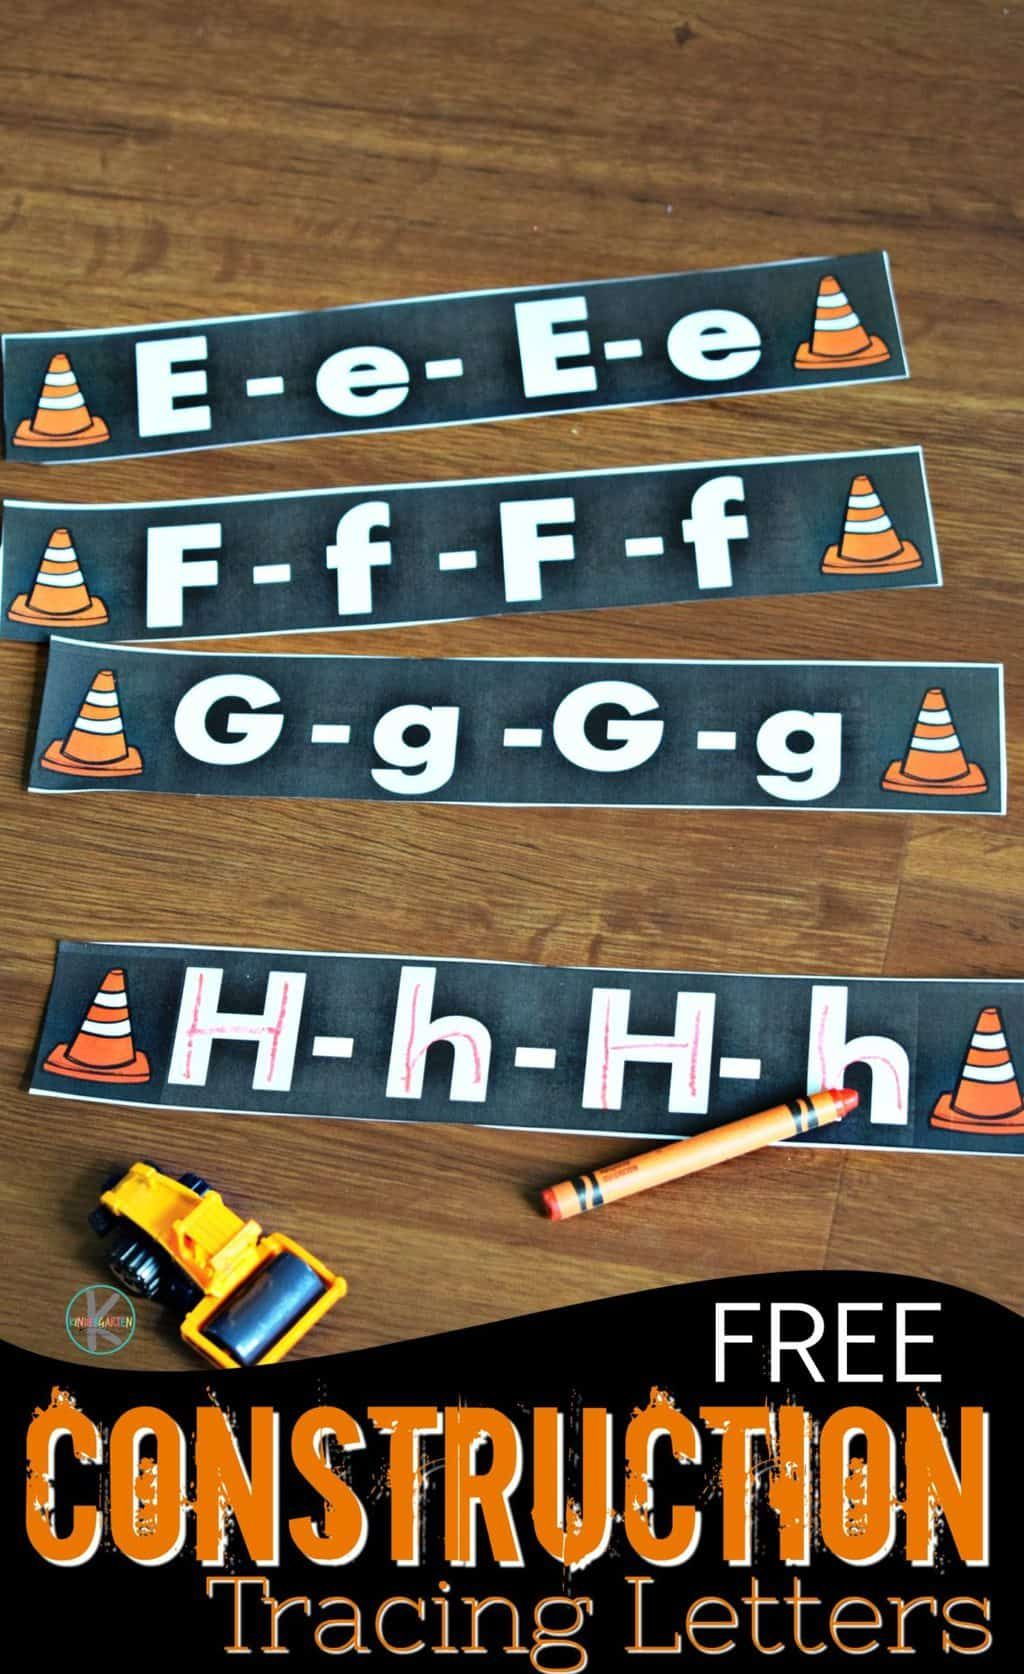 Free Construction Tracing Letters